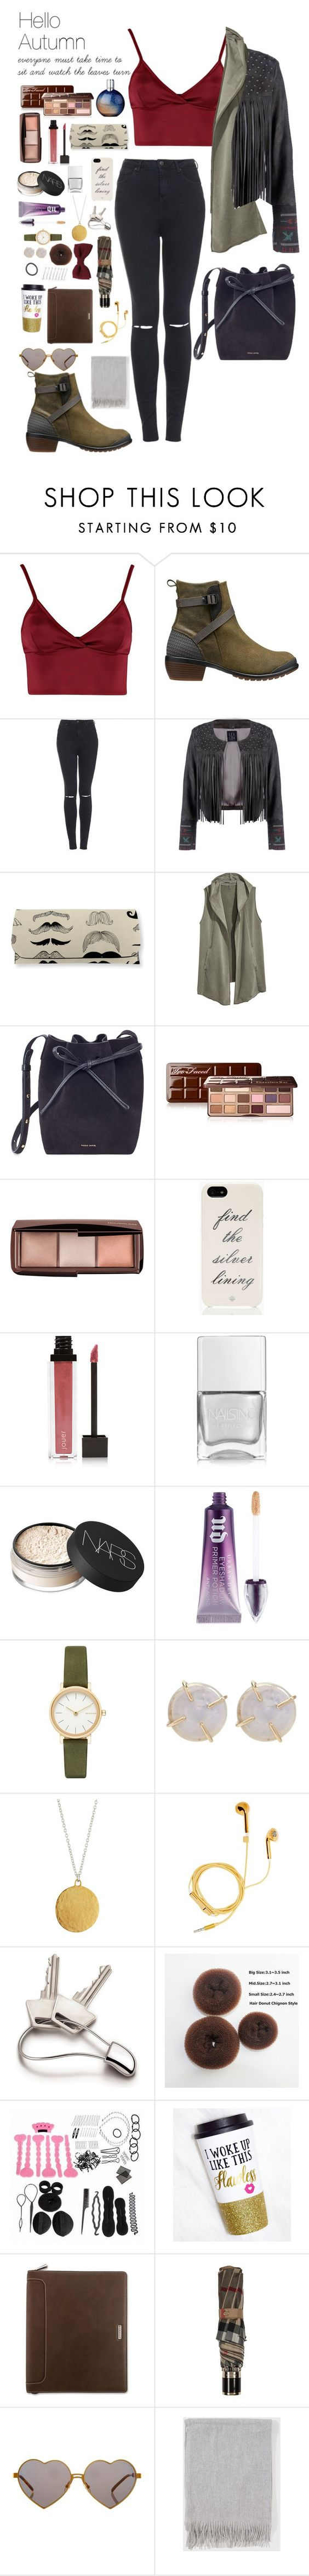 """Hello autumn"" by ugglorimossen ❤ liked on Polyvore featuring Lipsy, Keen Footwear, Topshop, H&M, Mansur Gavriel, Too Faced Cosmetics, Hourglass Cosmetics, Kate Spade, Jouer and Nails Inc."